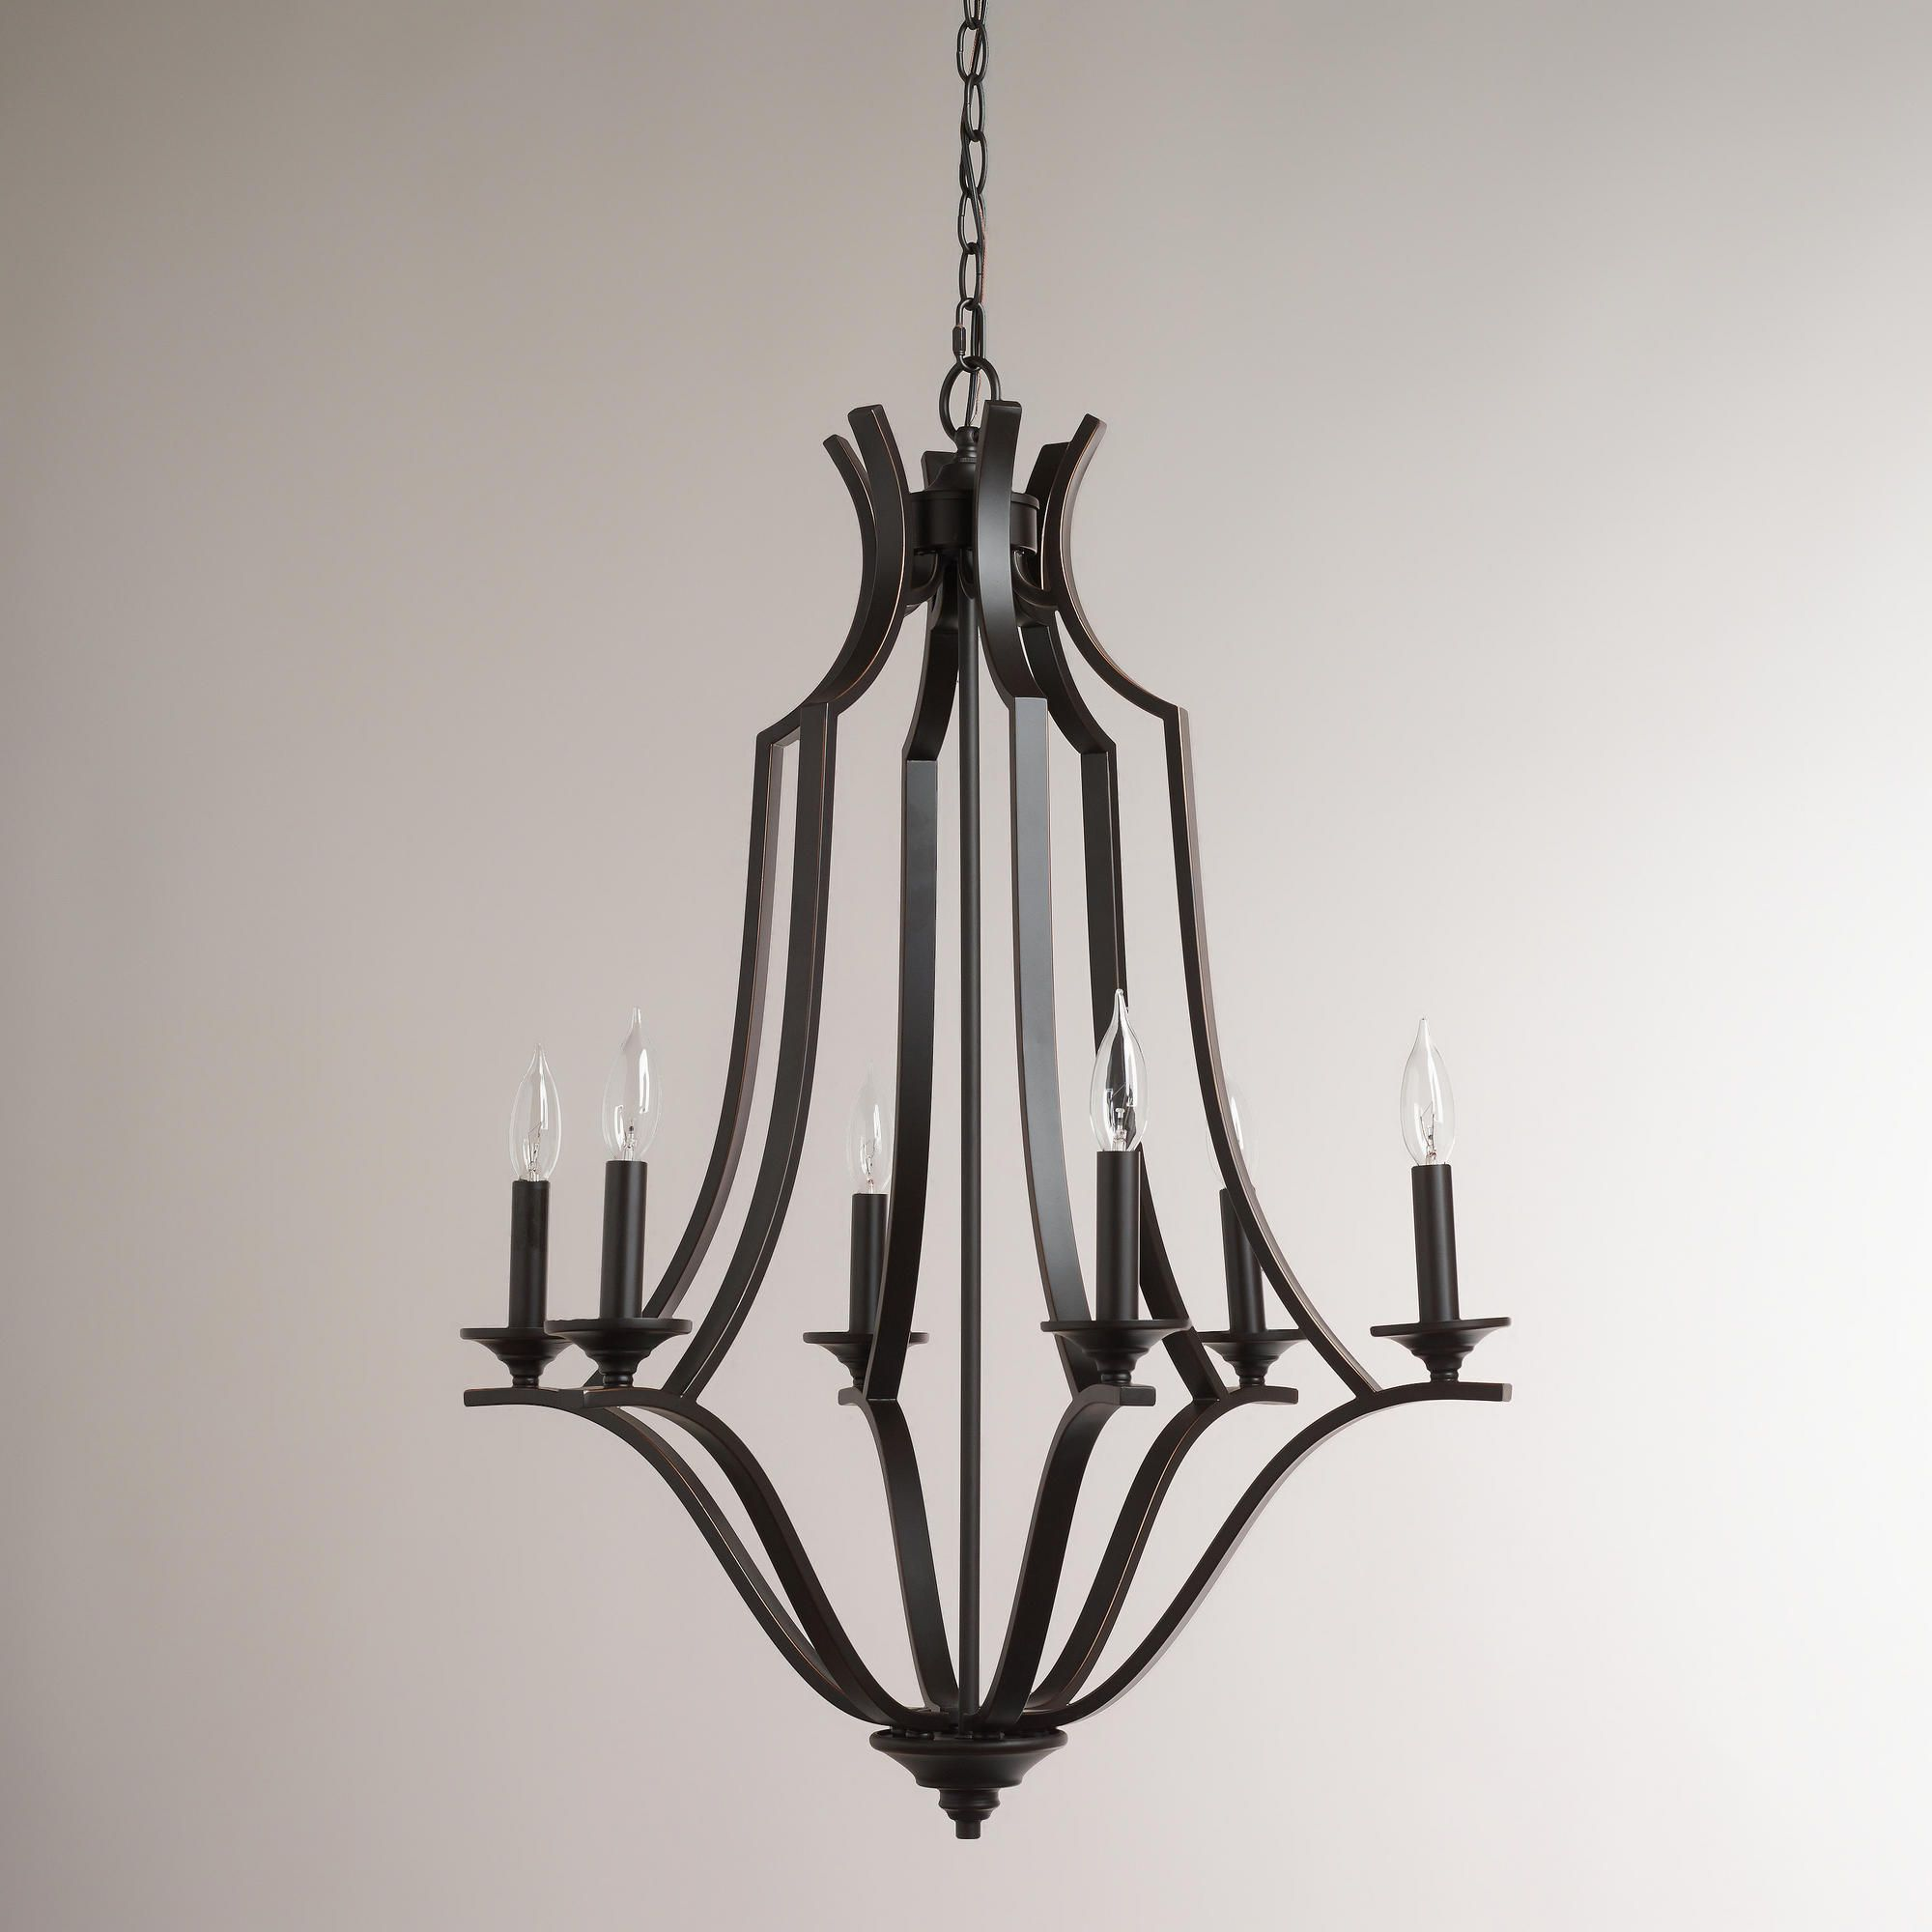 Large Iron Chandelier With Images Iron Chandeliers Foyer